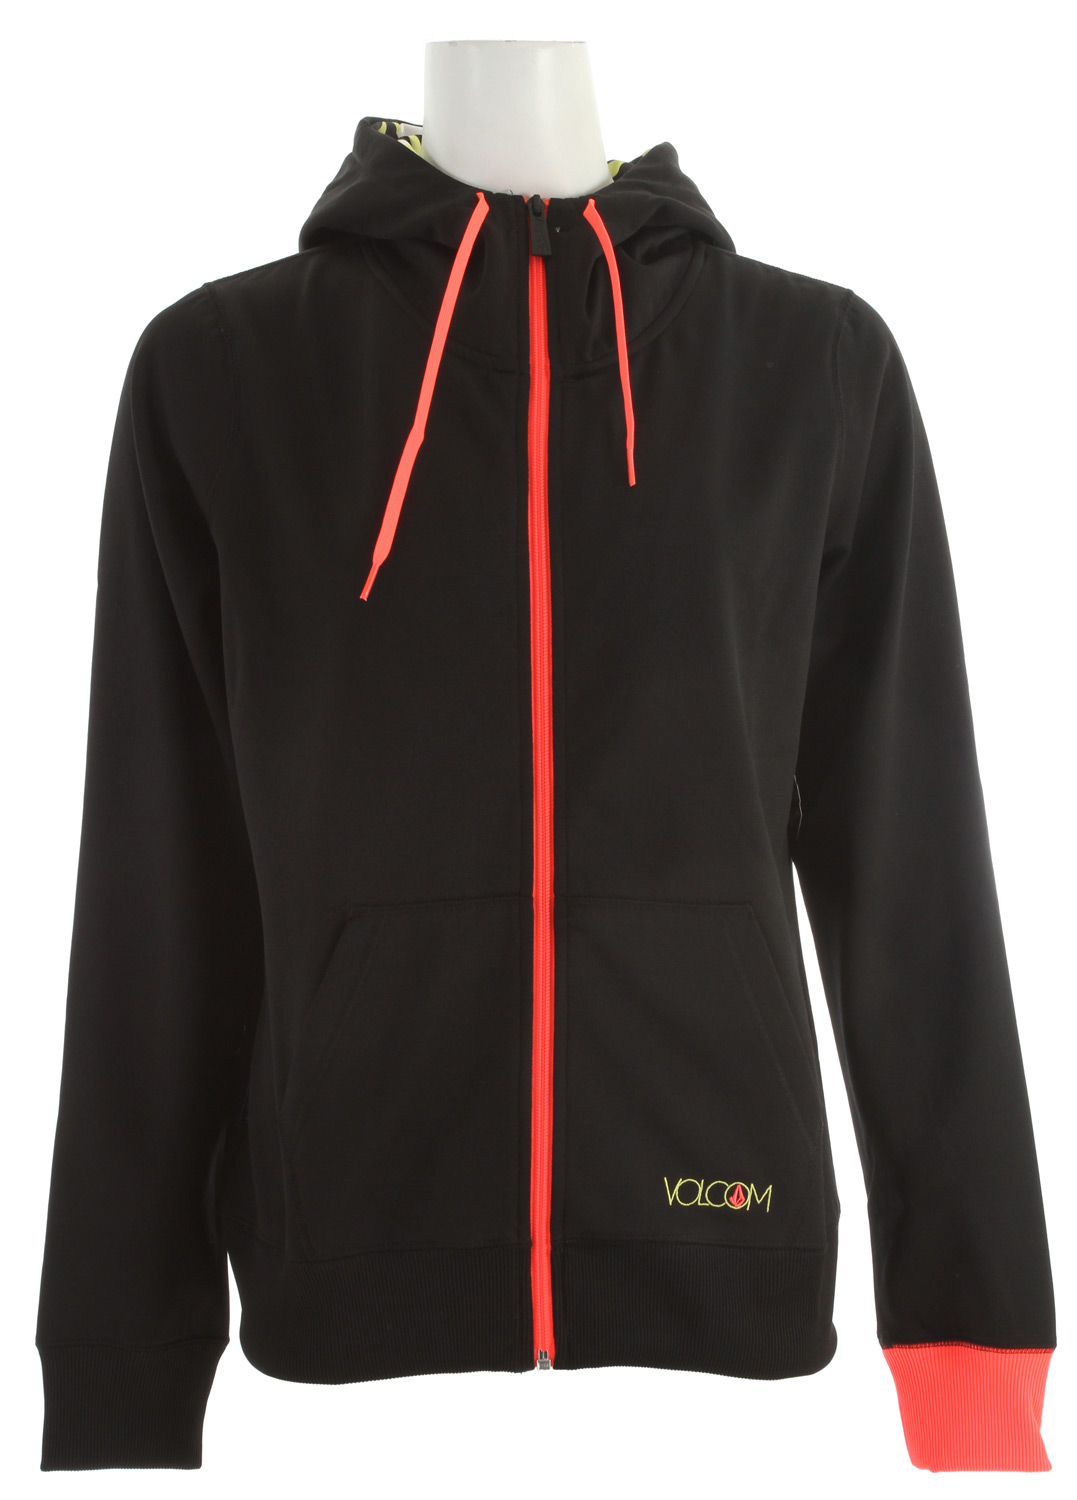 Surf Key Features of the Volcom Pyrus Full Zip Hoodie: Hydrophobic Fleece Ribbed Cuff Ribbed Hem Contrast Colored Drawcord Hood Cinch Printed Hood Lining Volcom Text And Stone Embroidery Volcom Woven Label - $60.00